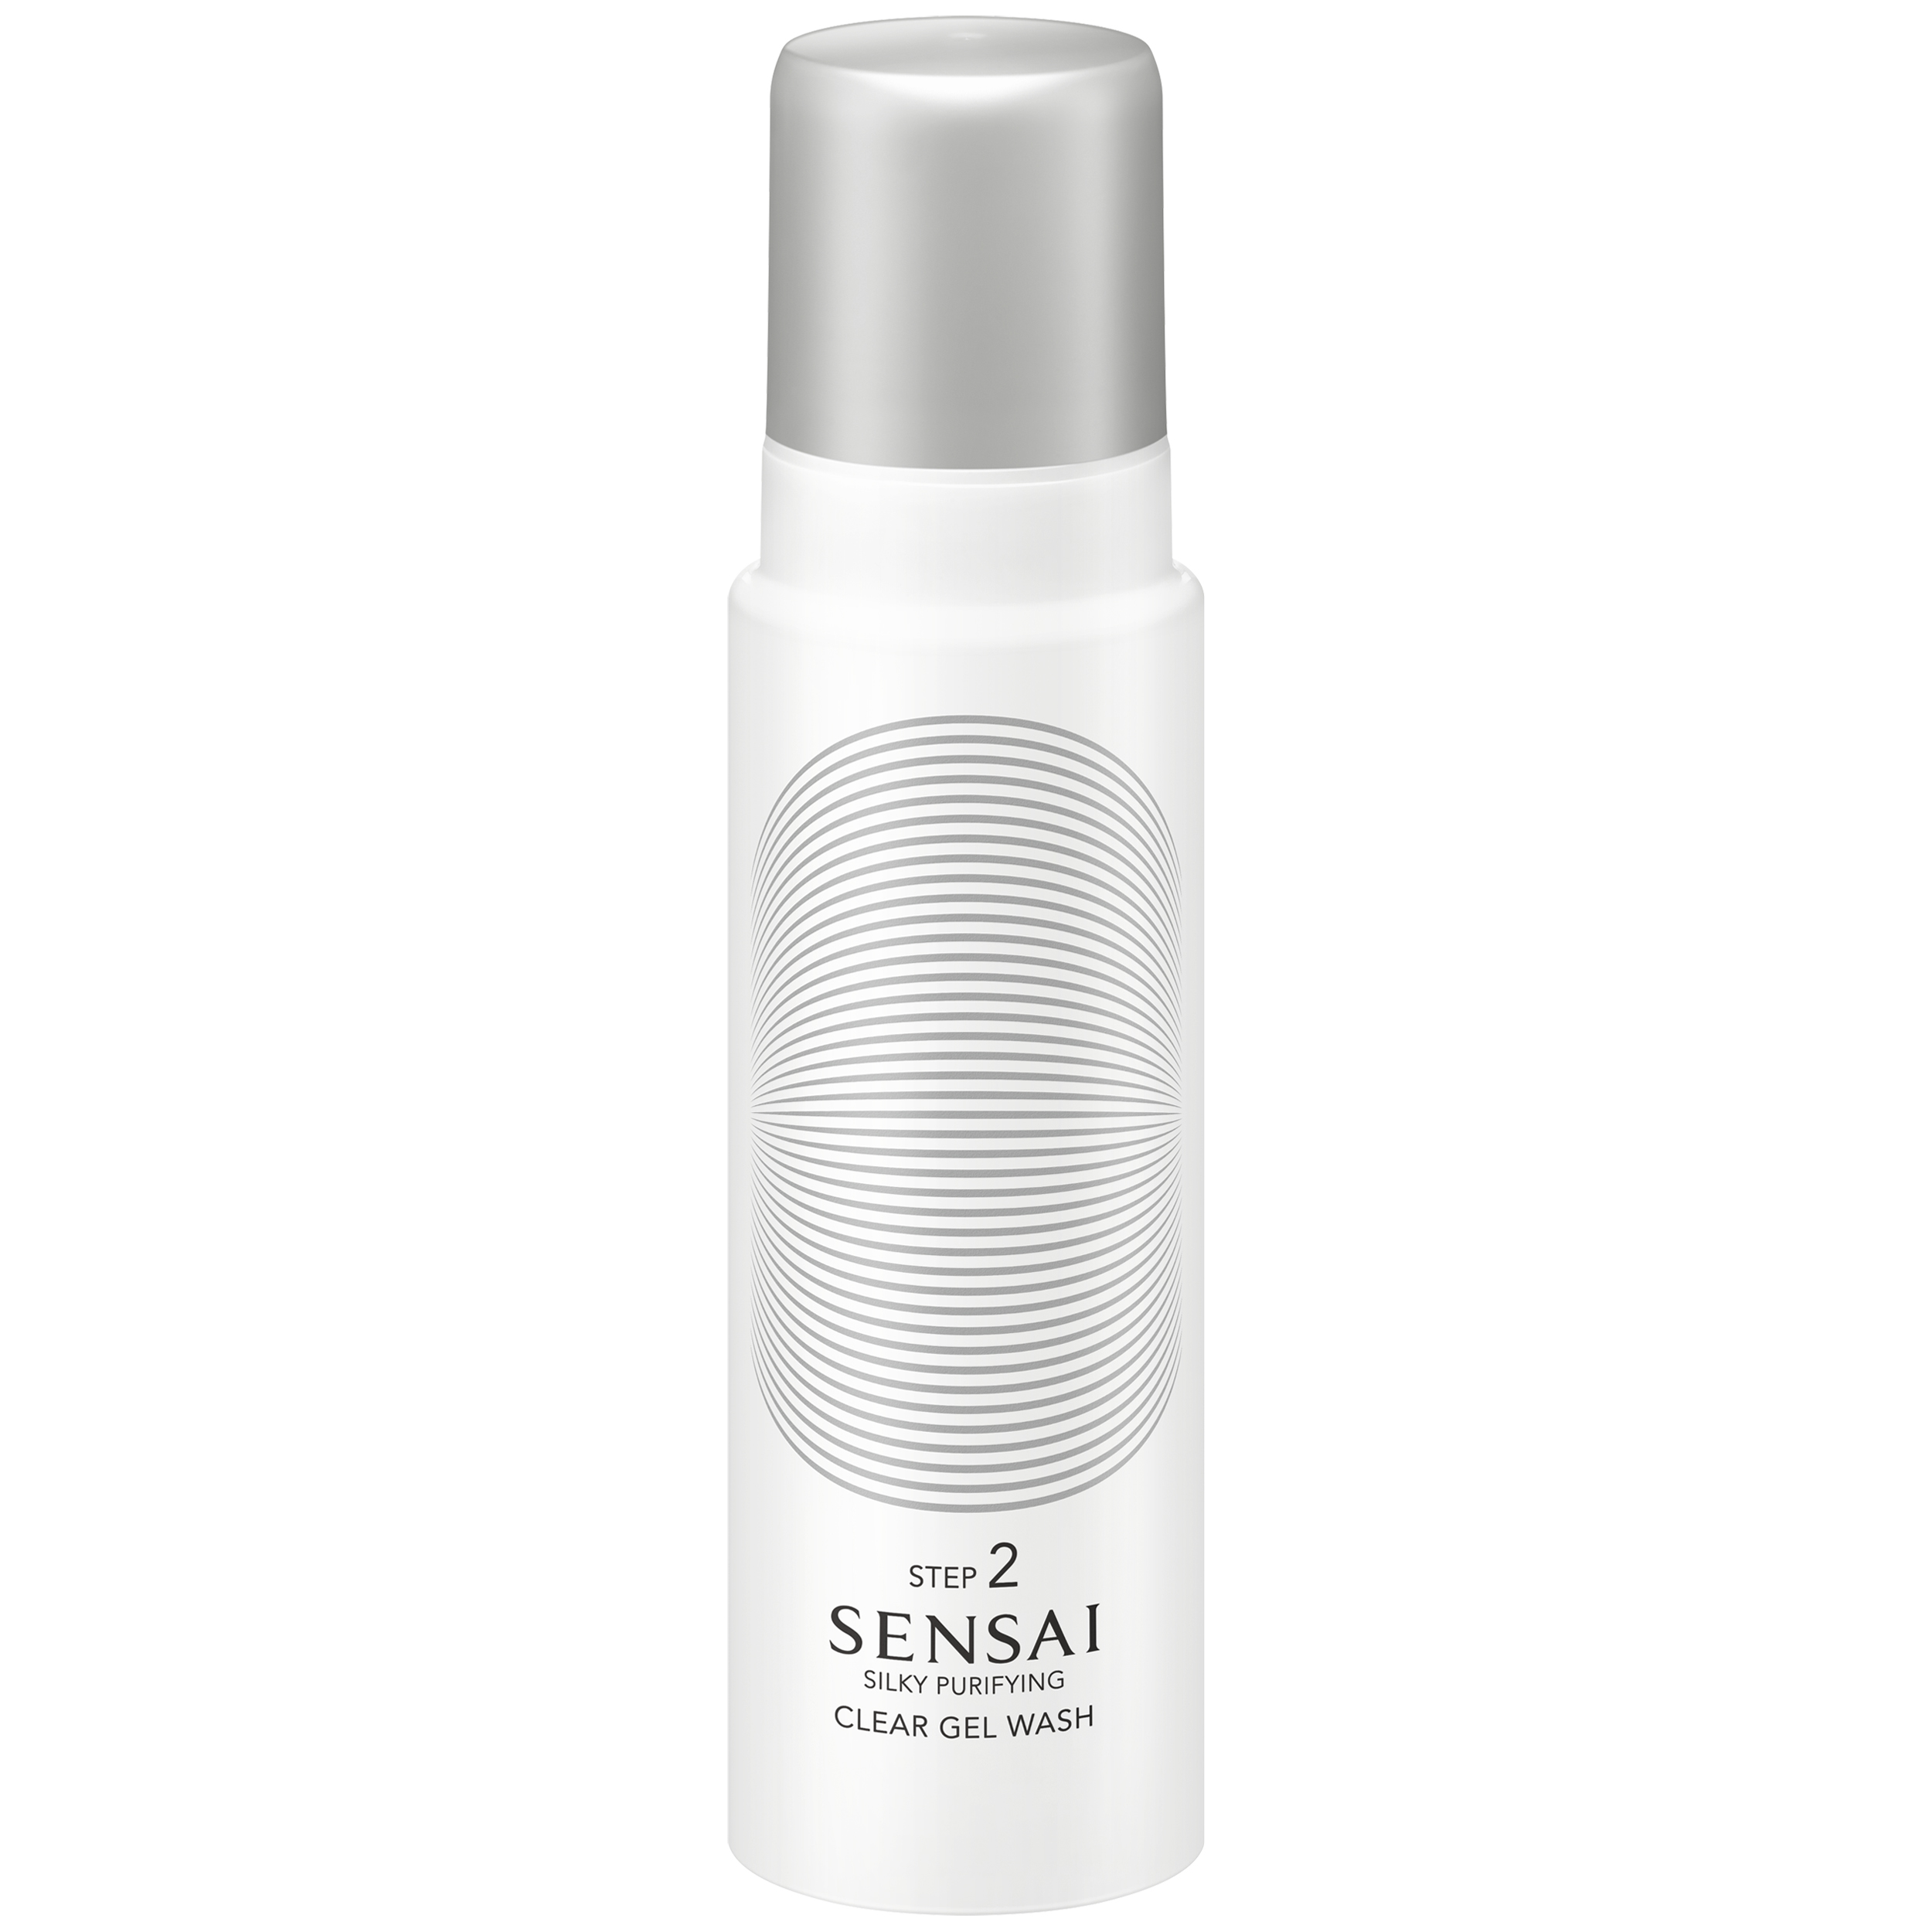 SENSAI SILKY PURIFYING CLEAR GEL WASH